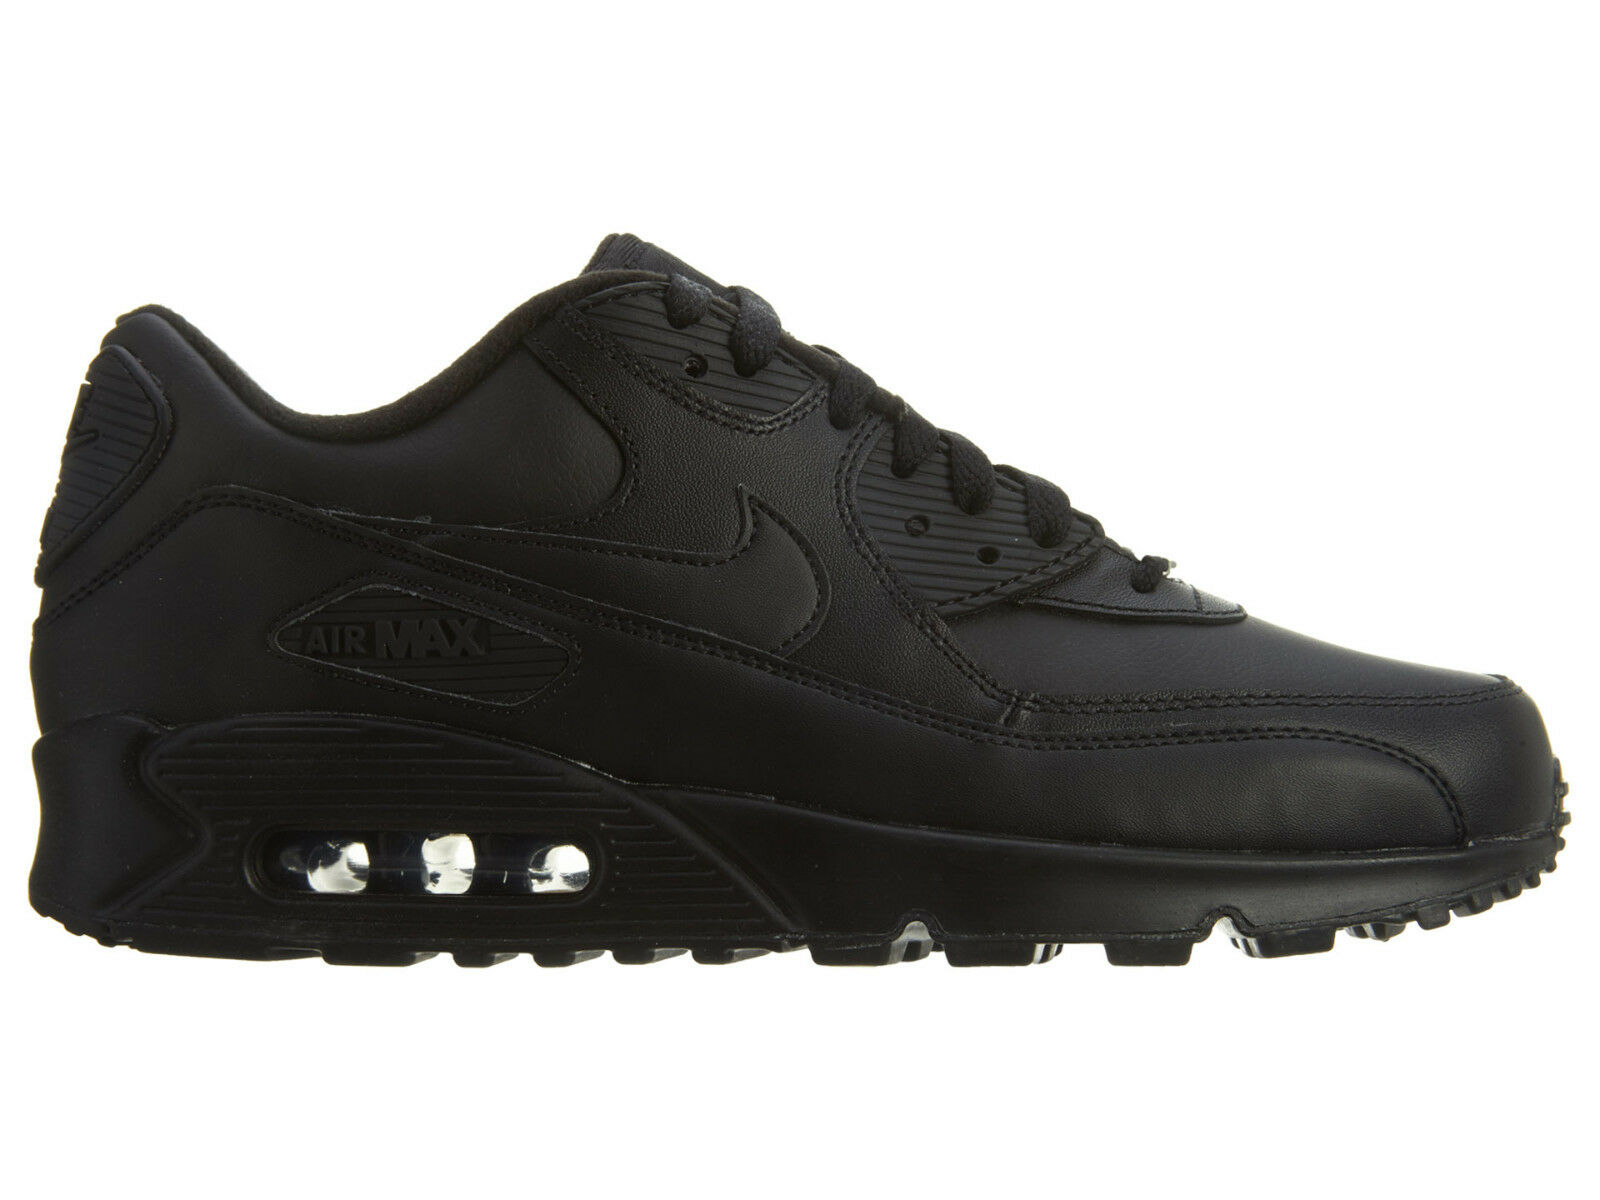 Nike Air Max 90 Leather Mens 302519-001 Size Black Running Athletic Shoes Size 302519-001 12 826a37